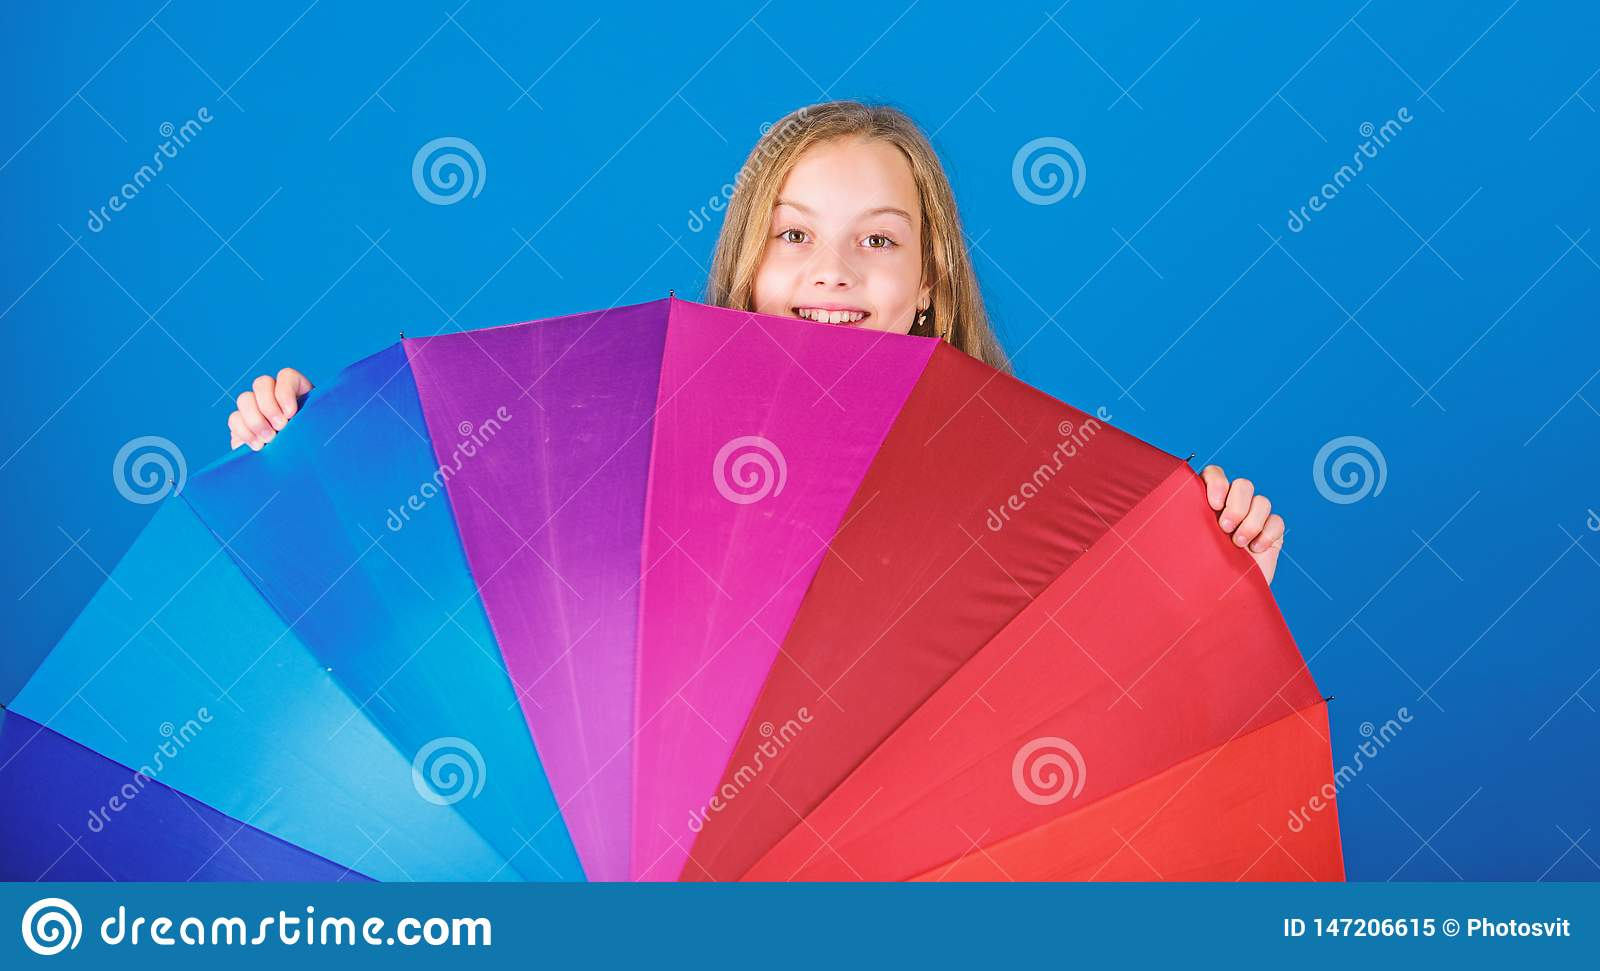 Stay positive though rainy day. Brighten up life. Kid peek out colorful rainbow umbrella. Color your life. Girl cheerful